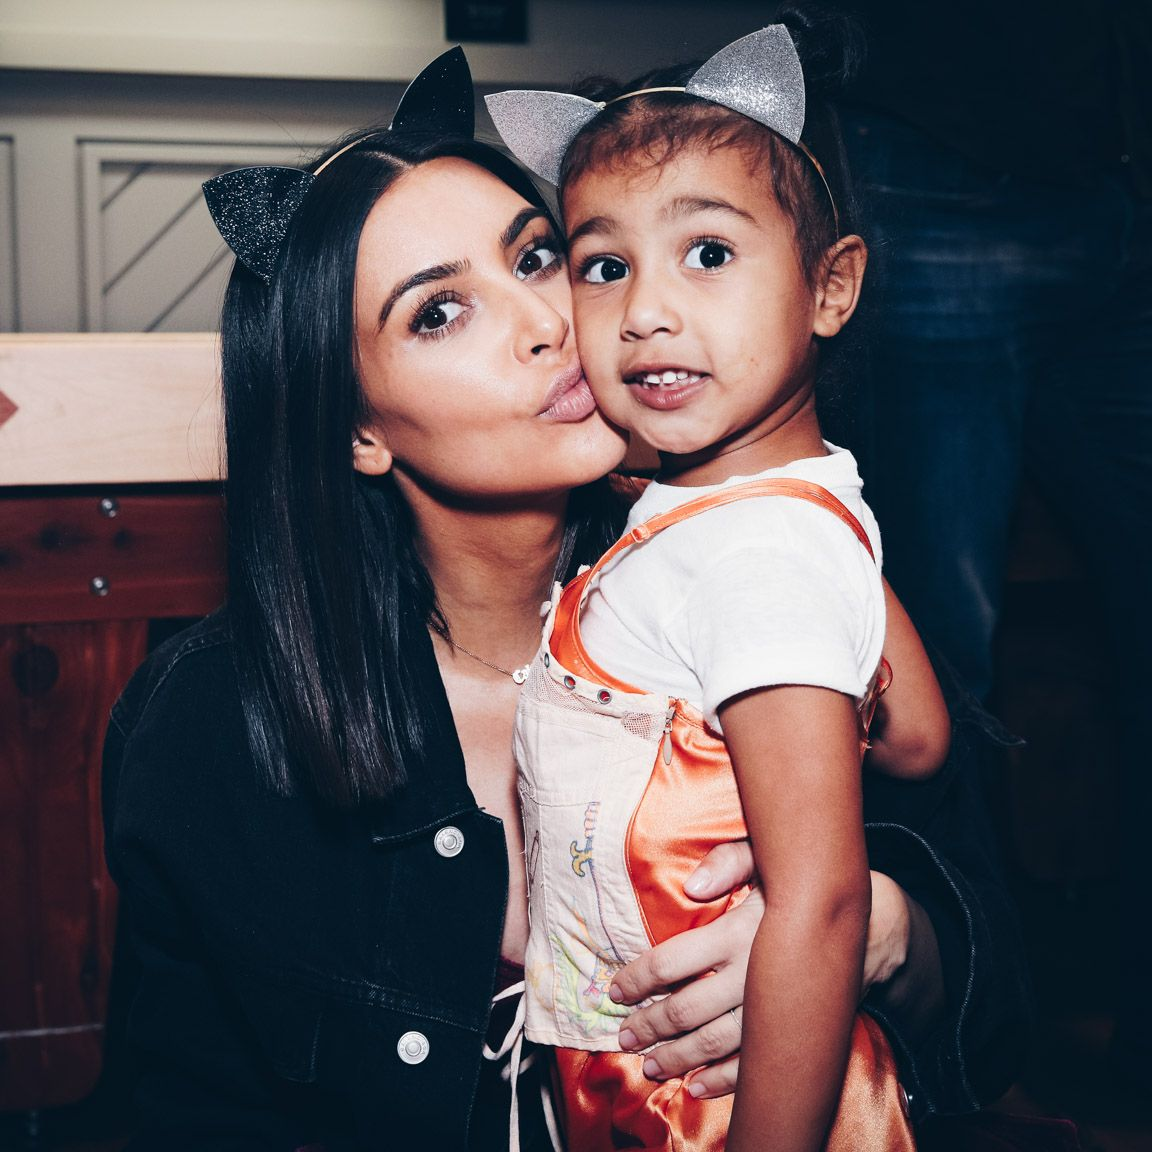 Kim Kardashian and North West Wore Matching Snakeskin Outfits to Kanye West's Church Service